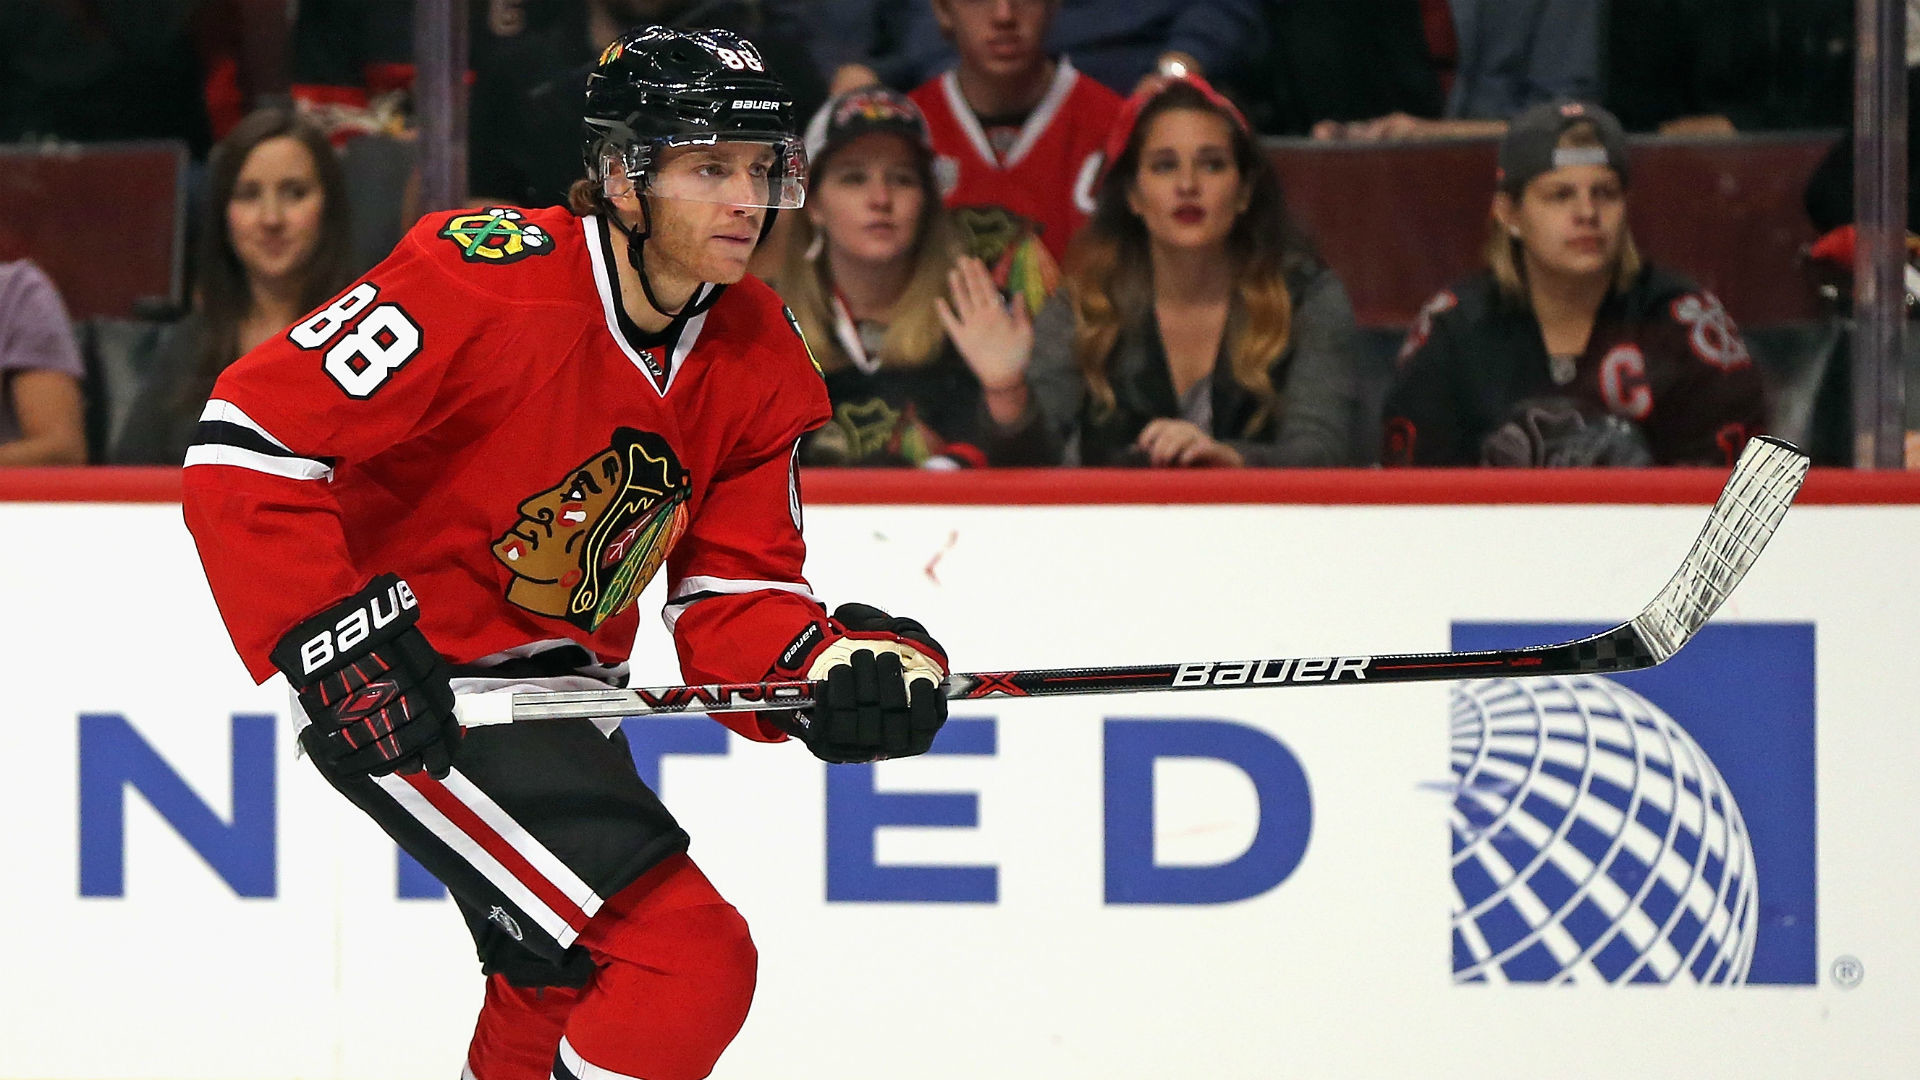 1920x1080 Leaked 'evidence' in Patrick Kane case was hoax, district attorney says |  NHL | Sporting News